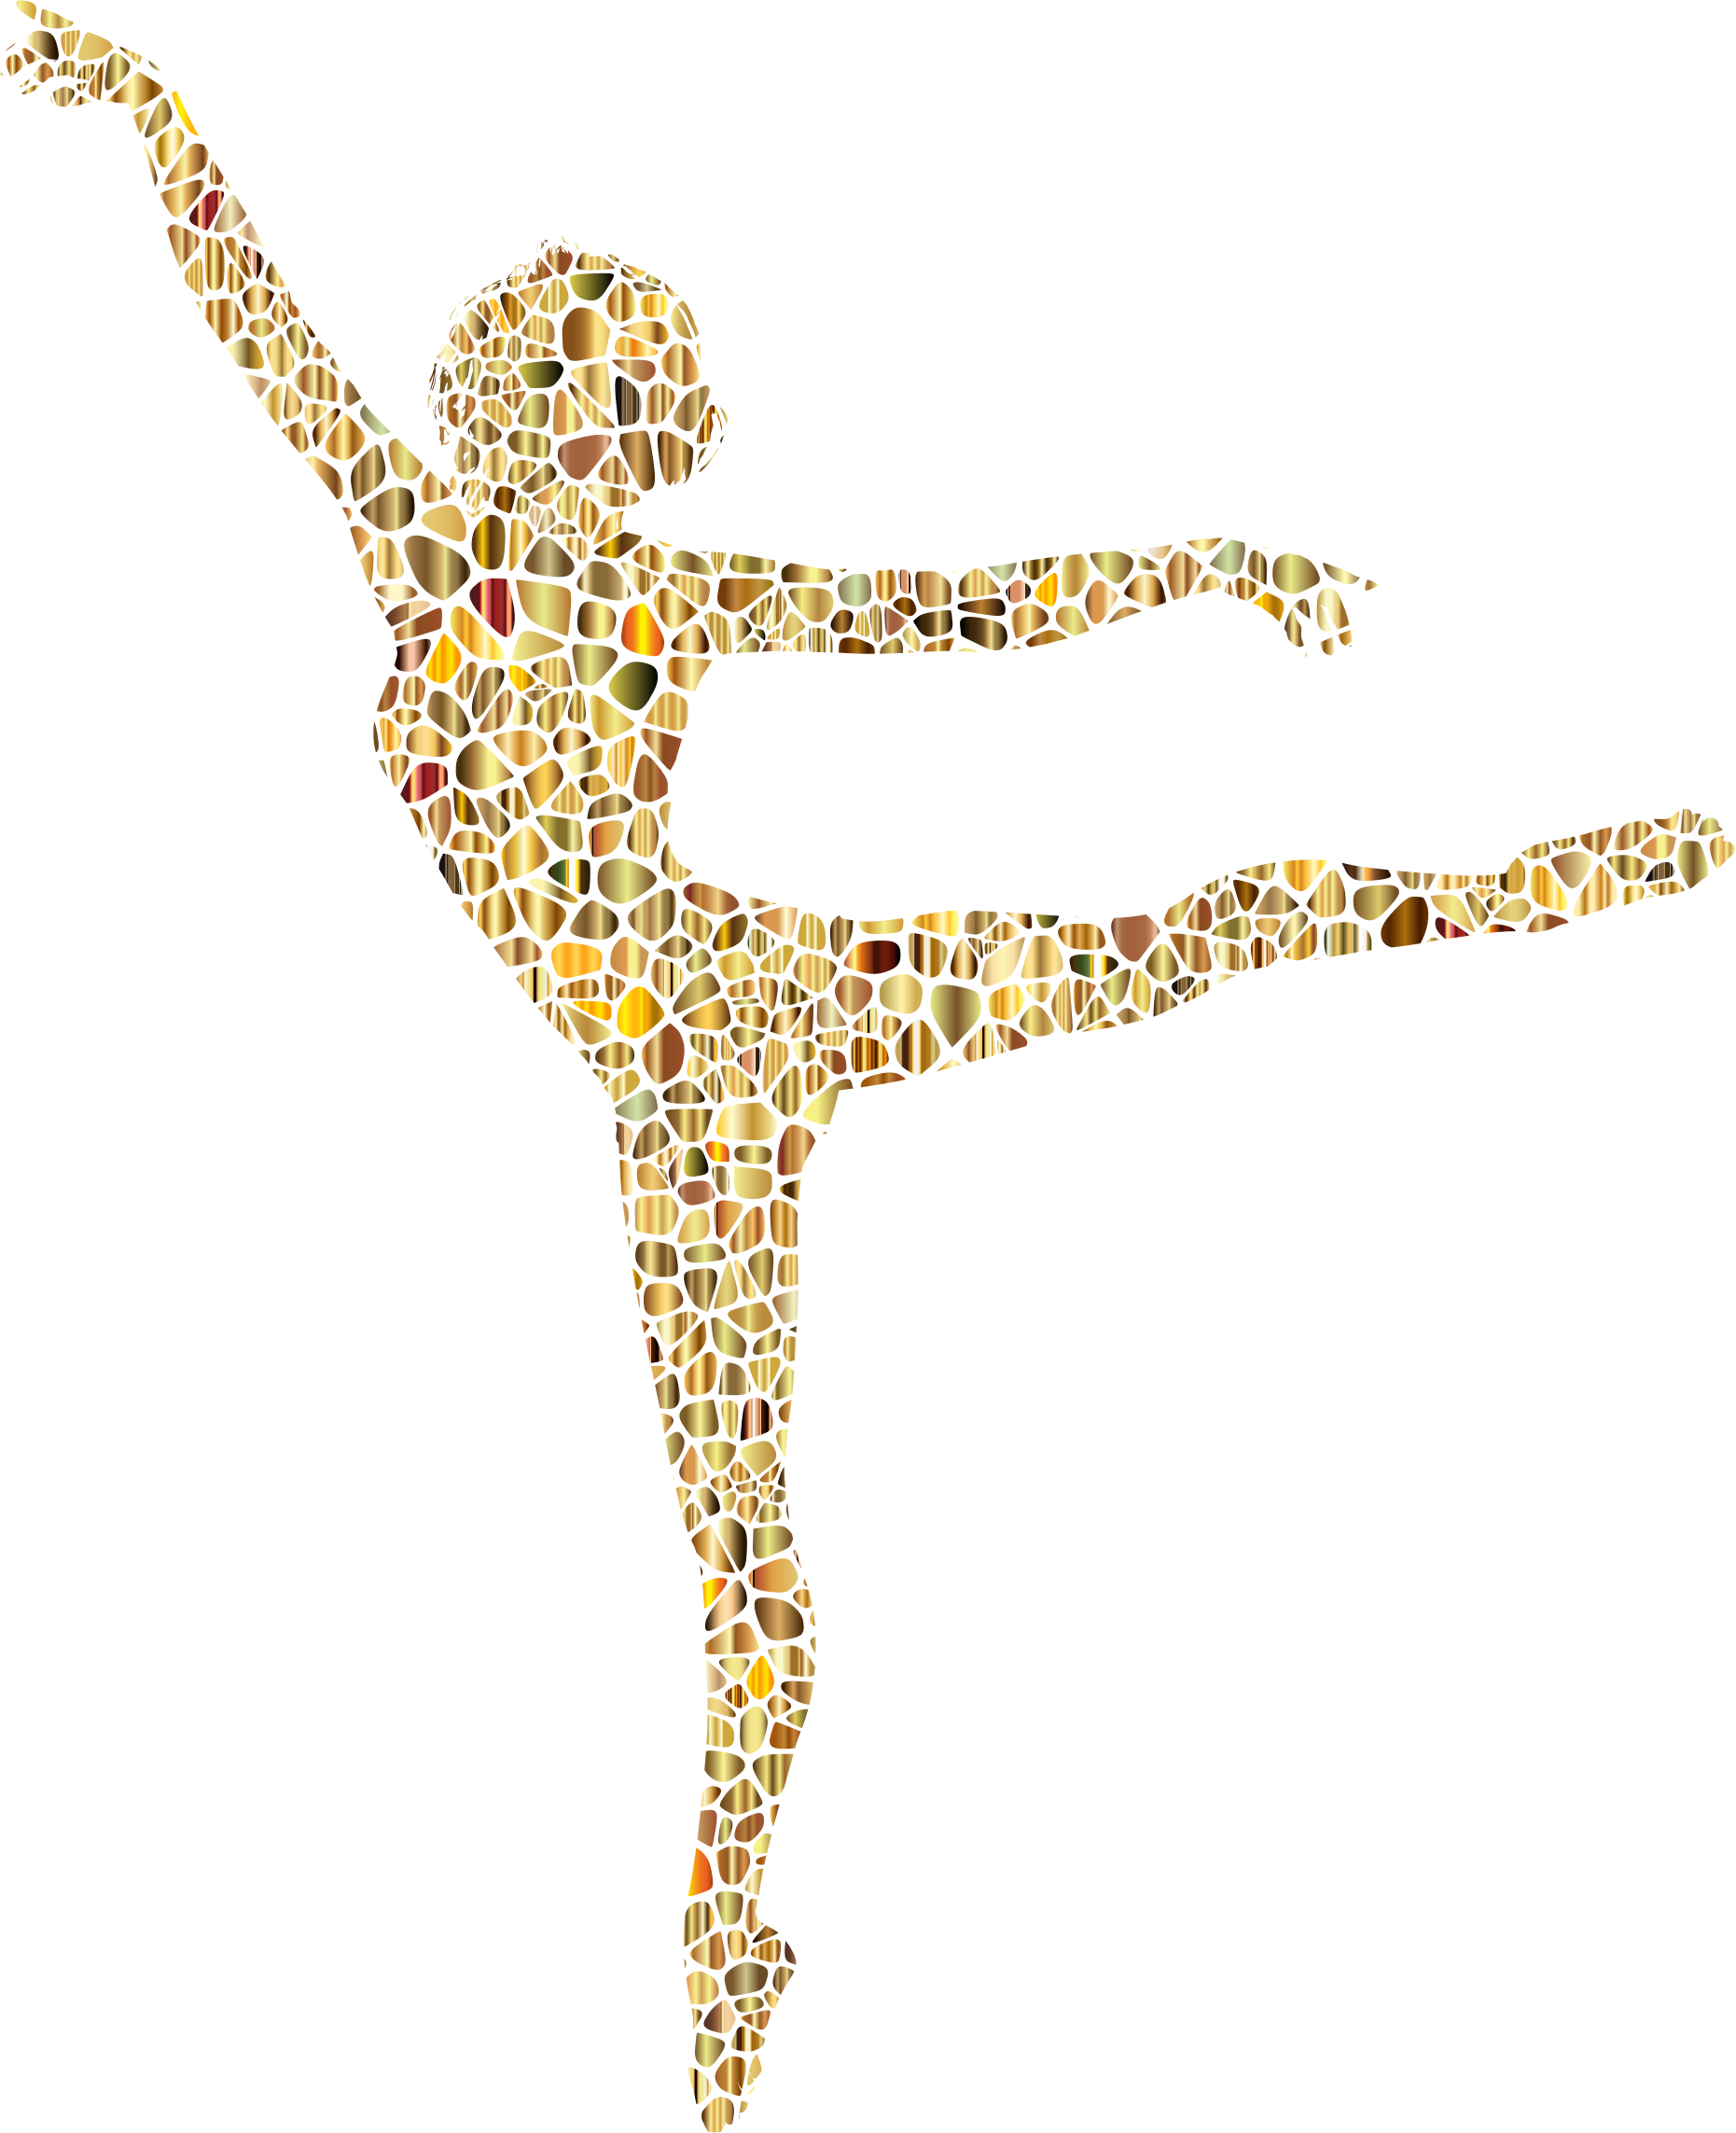 Polychromatic Tiled Lithe Dancing Woman Silhouette 3 No Background by GDJ